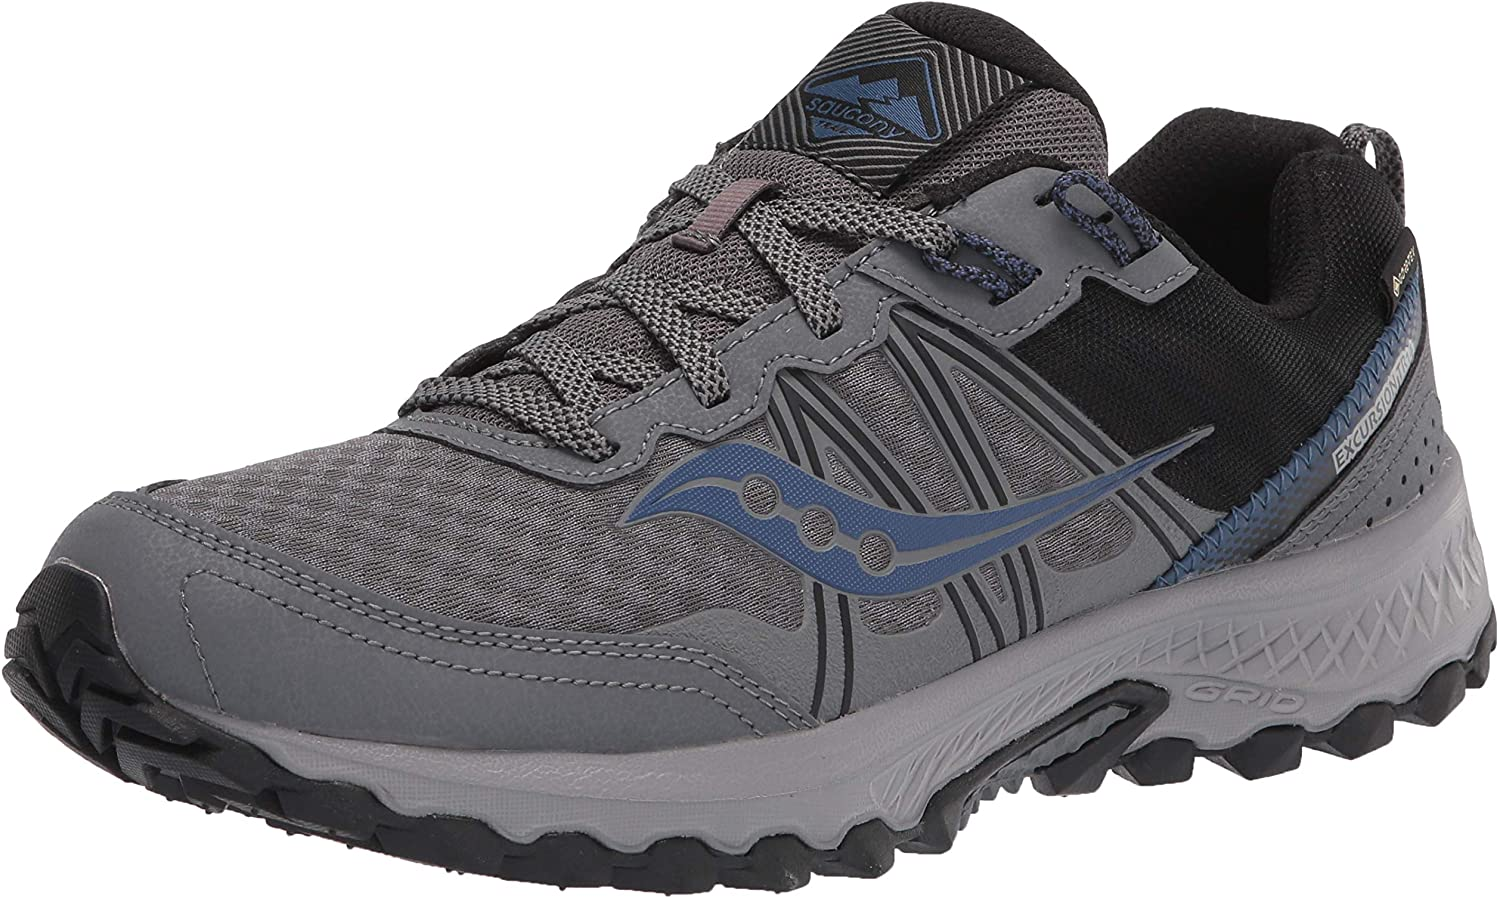 Saucony Excurstion TR14 GTX Men's Trail Running Shoes